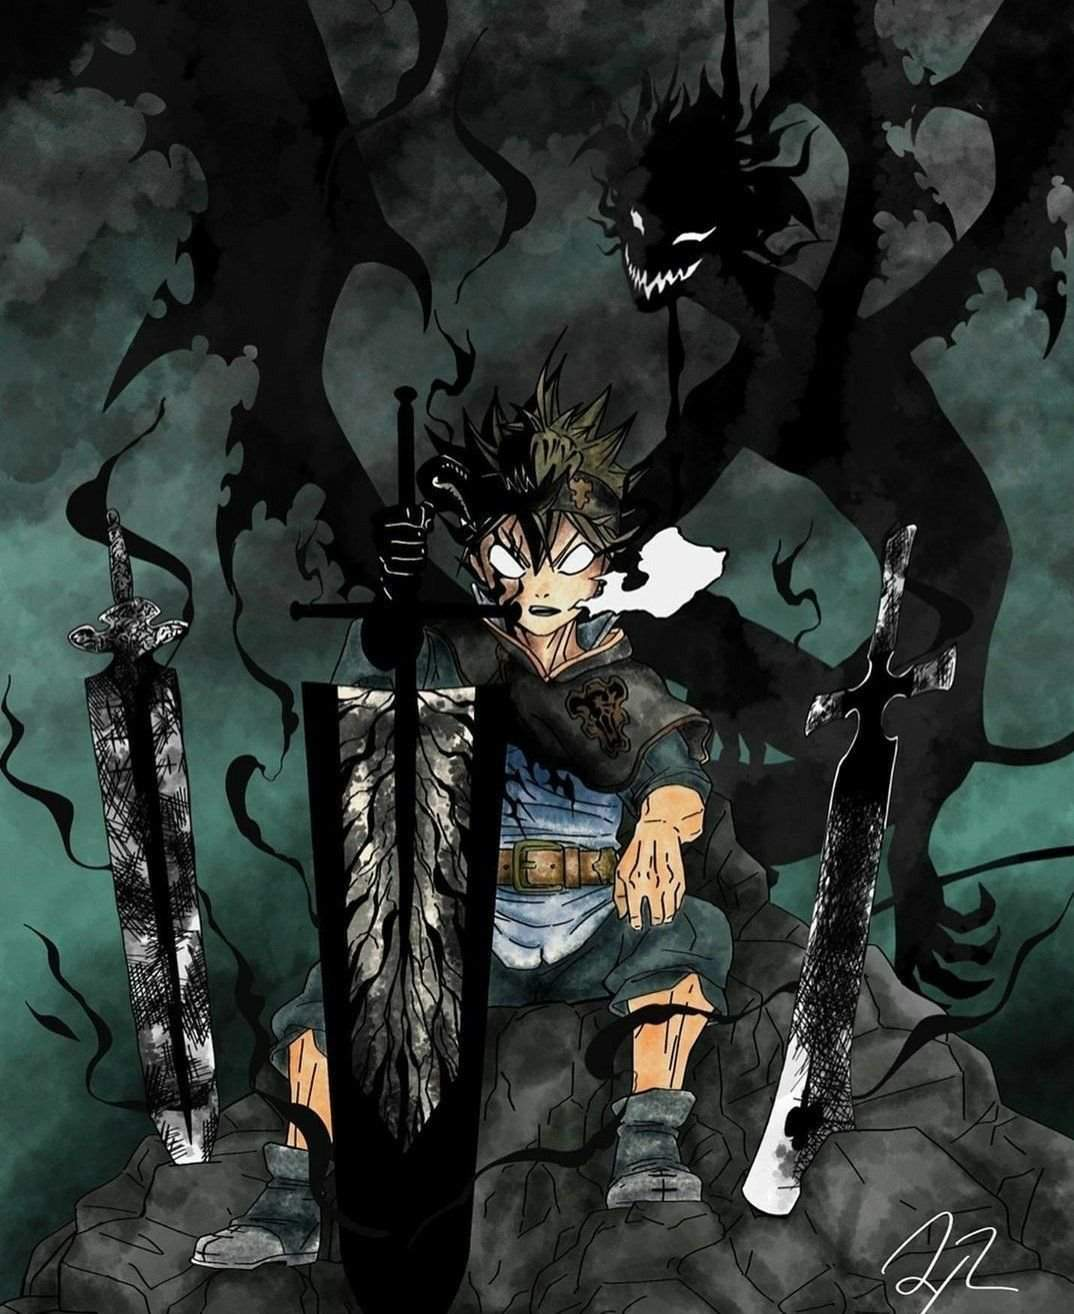 Live wallpaper is an exciting and novel way of spicing up your smartphone's home and lock screens. Black Clover Wallpaper - KoLPaPer - Awesome Free HD Wallpapers